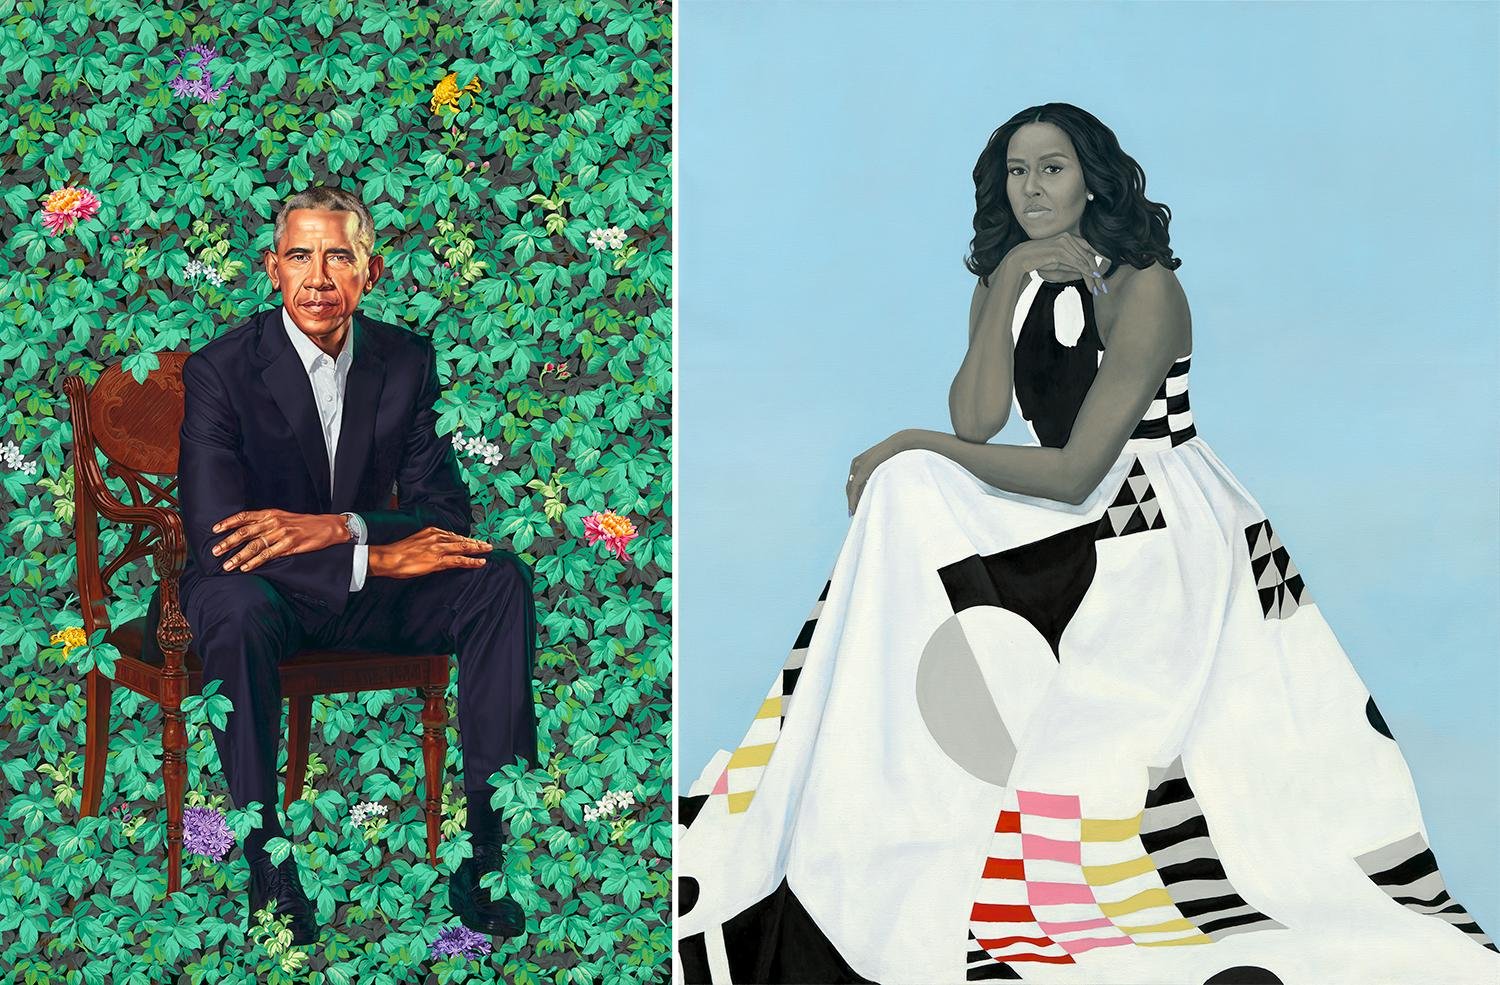 Barack Michelle Obama presidential portraits